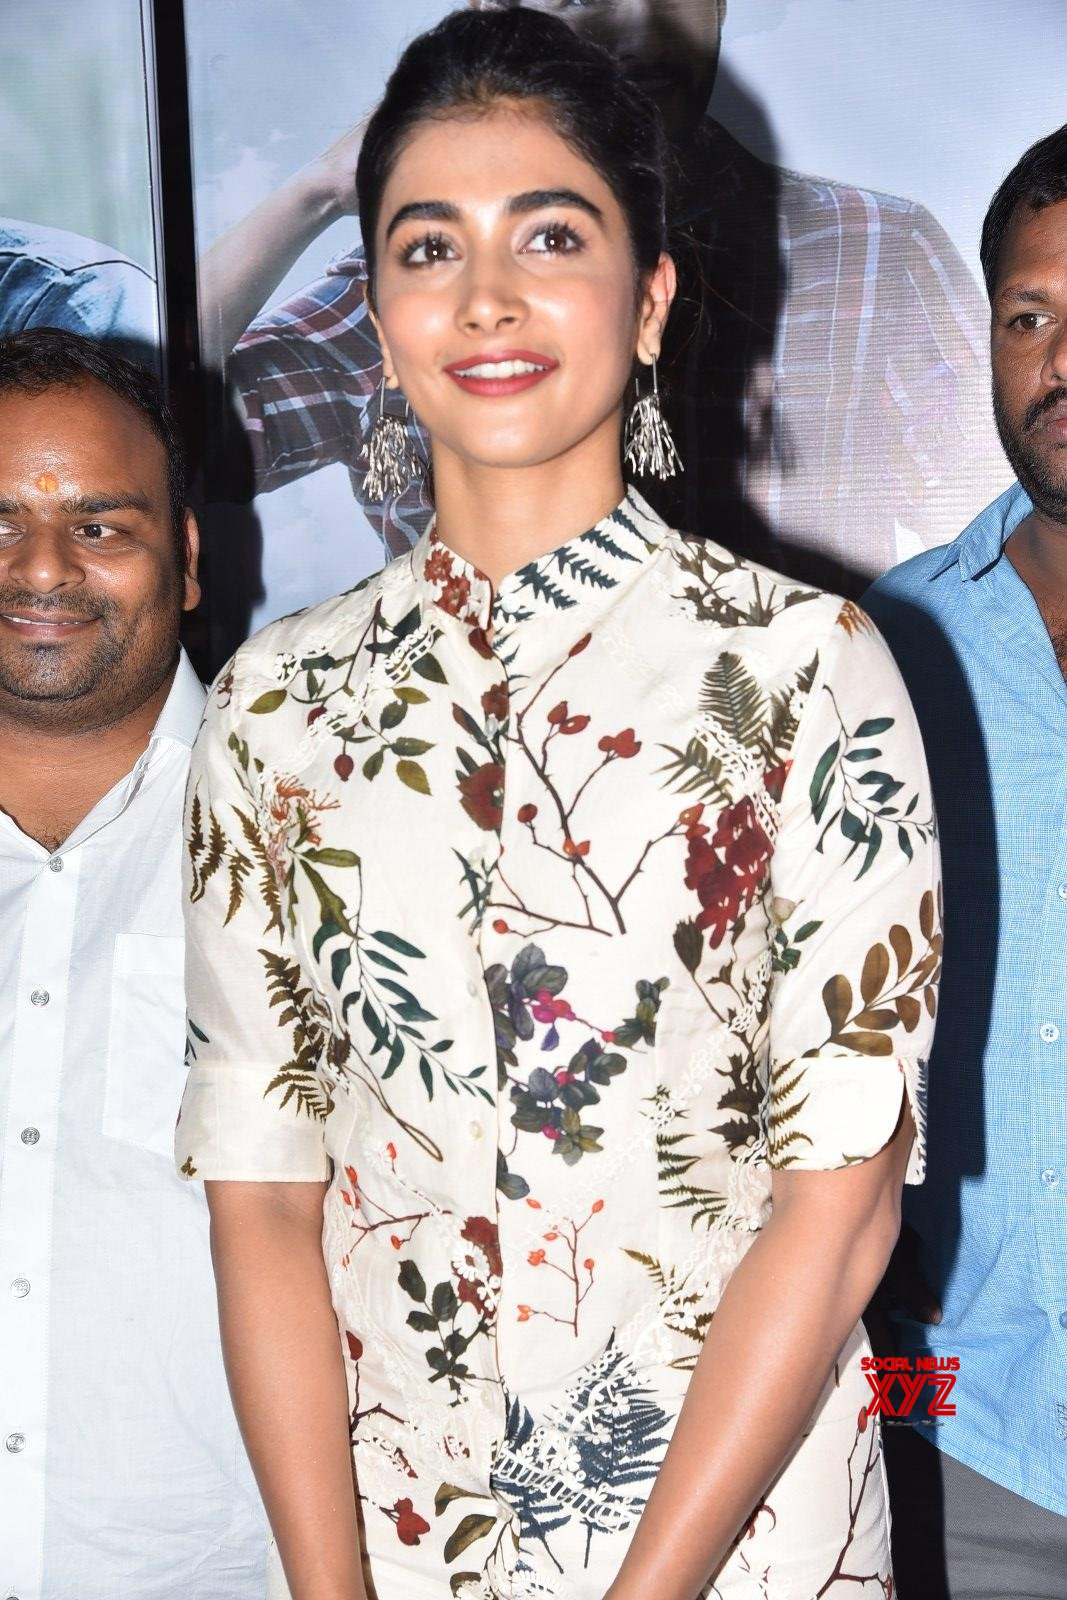 Actress Pooja Hegde Stills from Maharshi Team Sudarshan 35MM Theater Visit